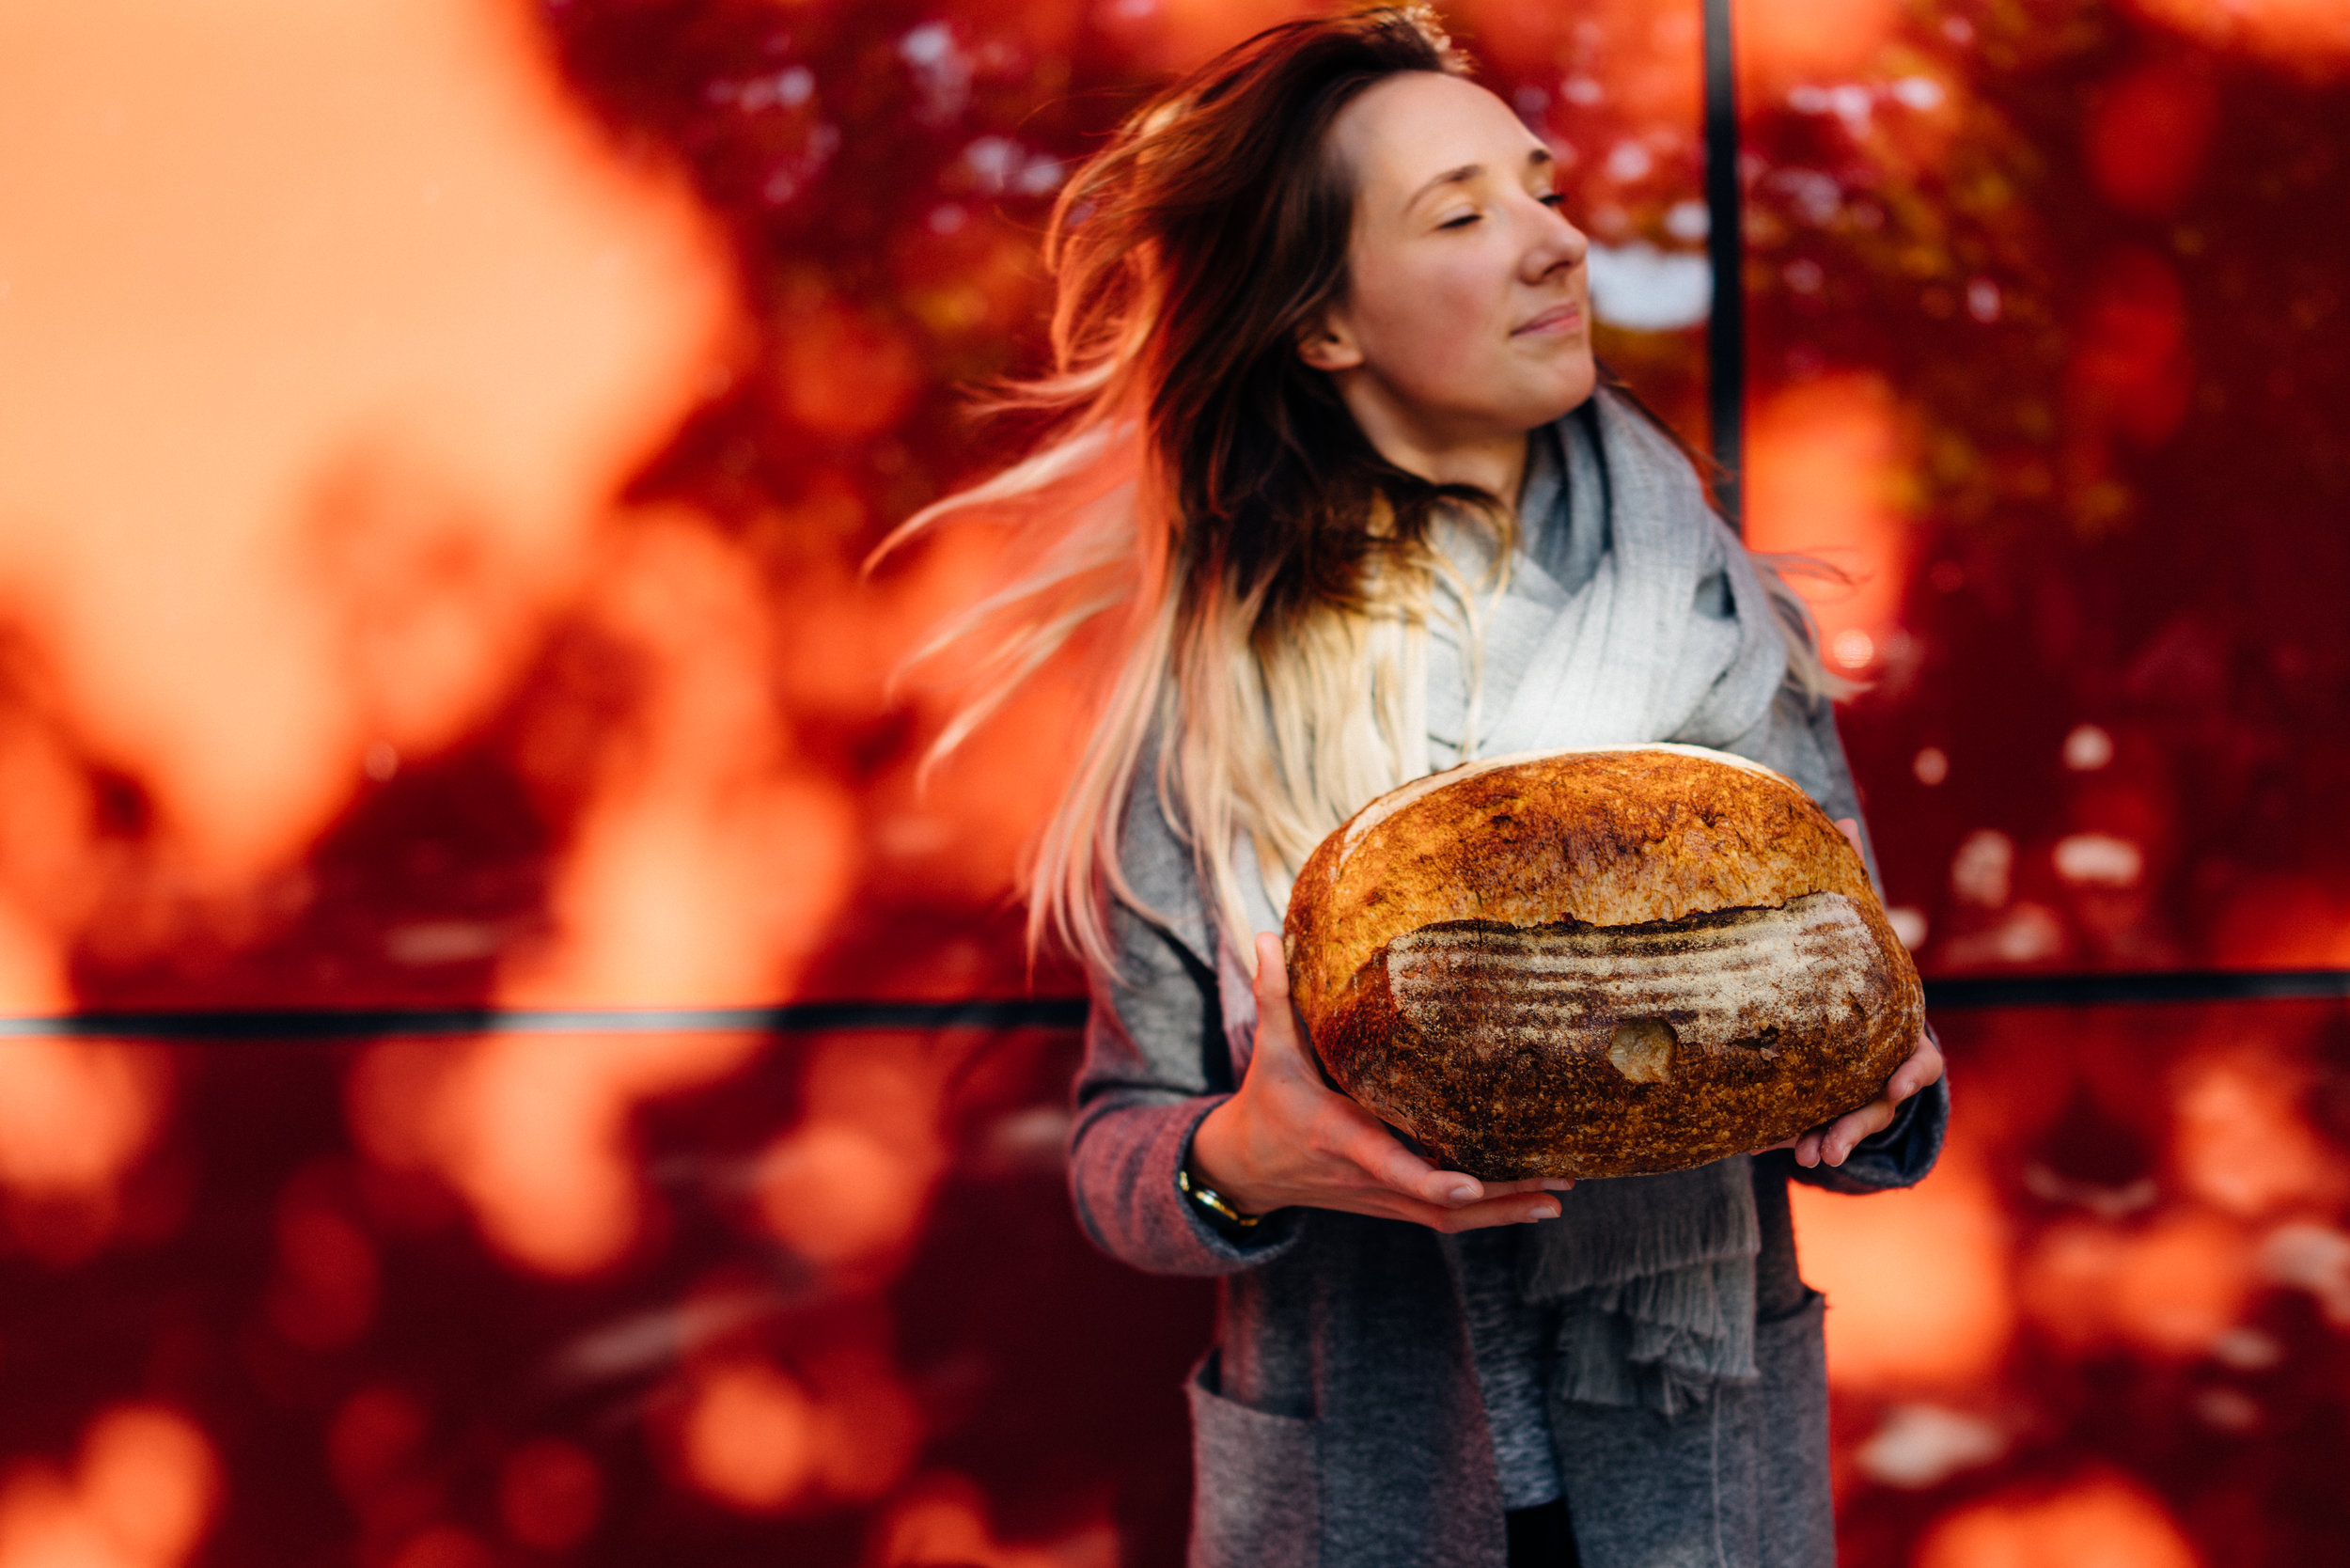 Edita Paulikaitė with The Snapery's classic Field Loaf in London, UK